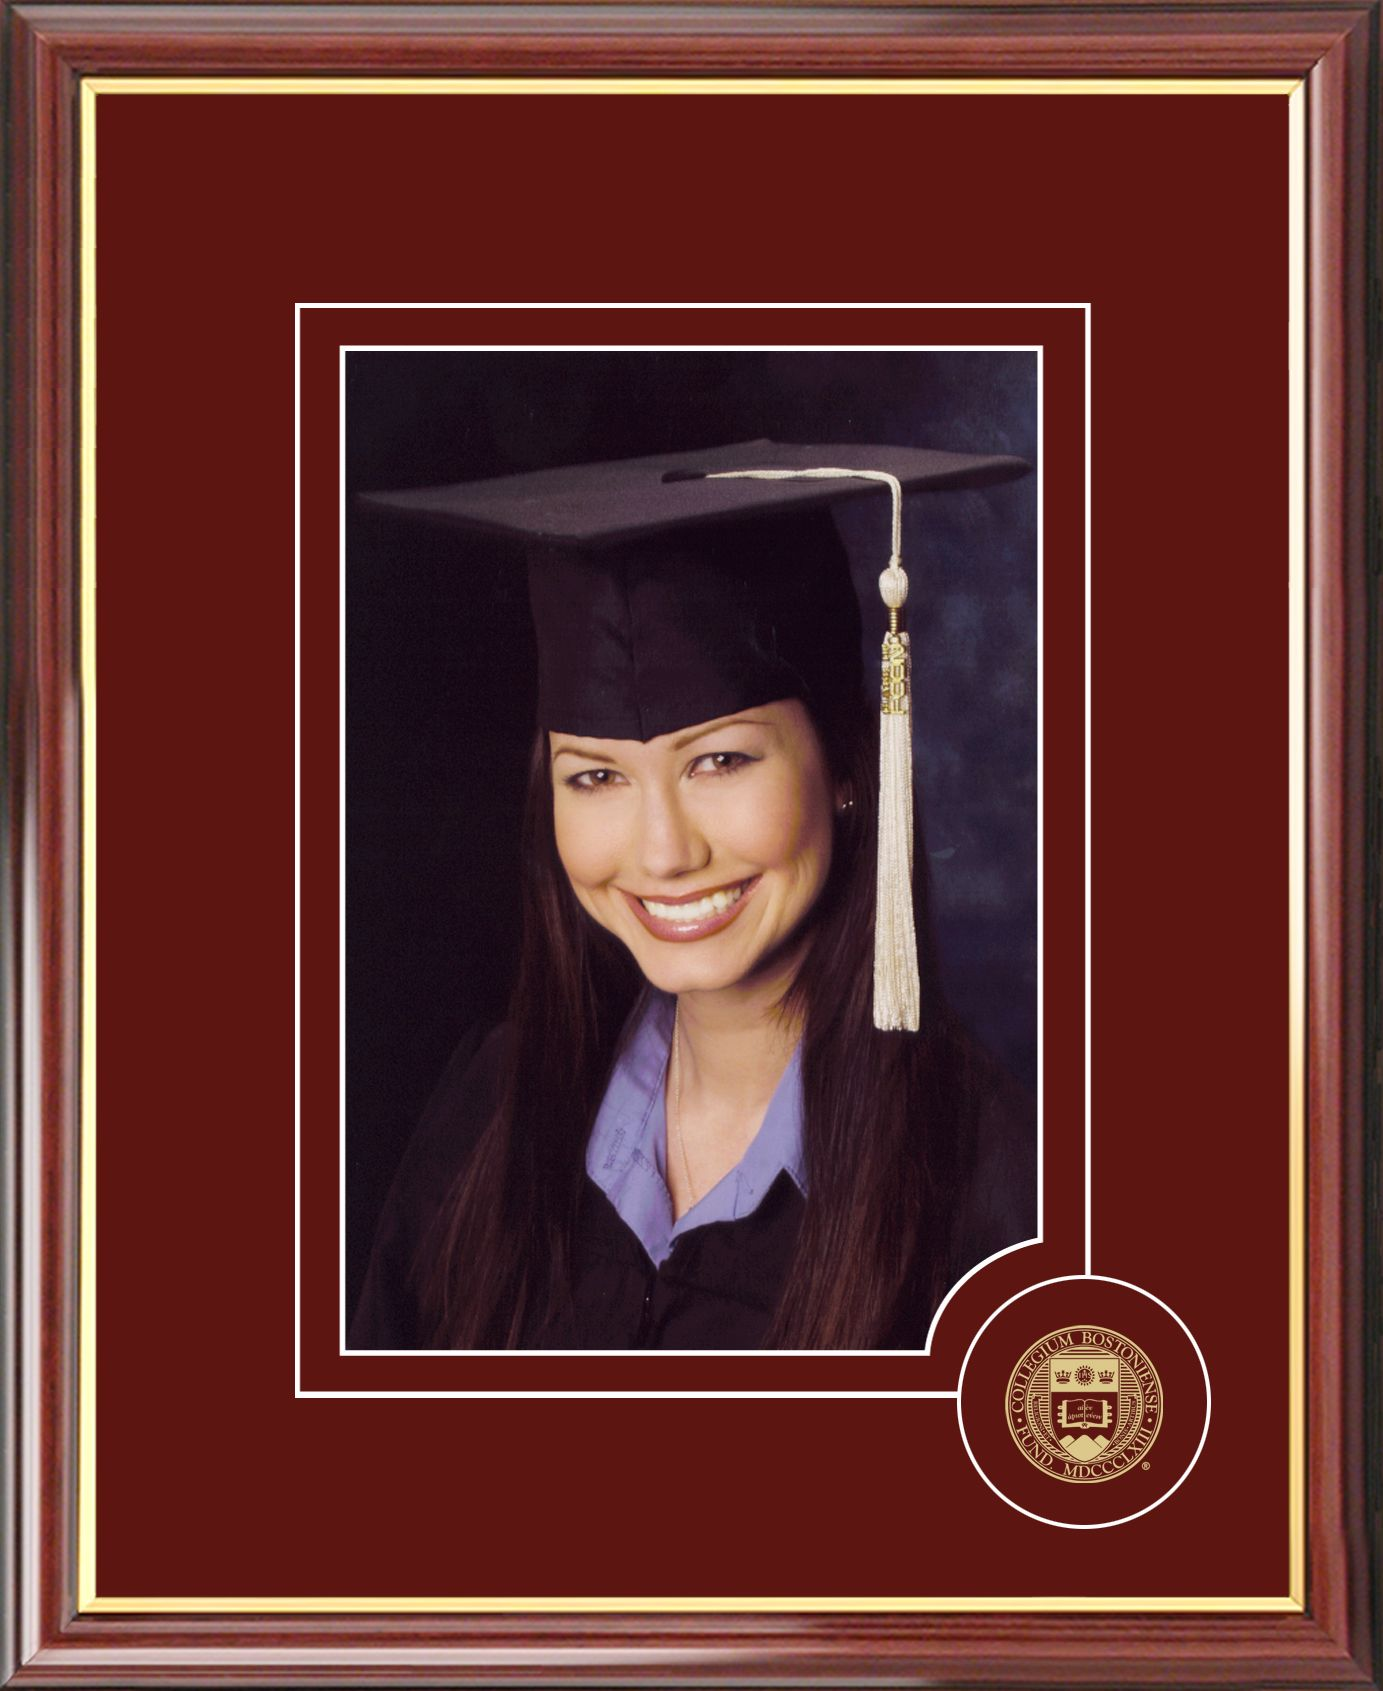 Boston College 5X7 Graduate Portrait Frame